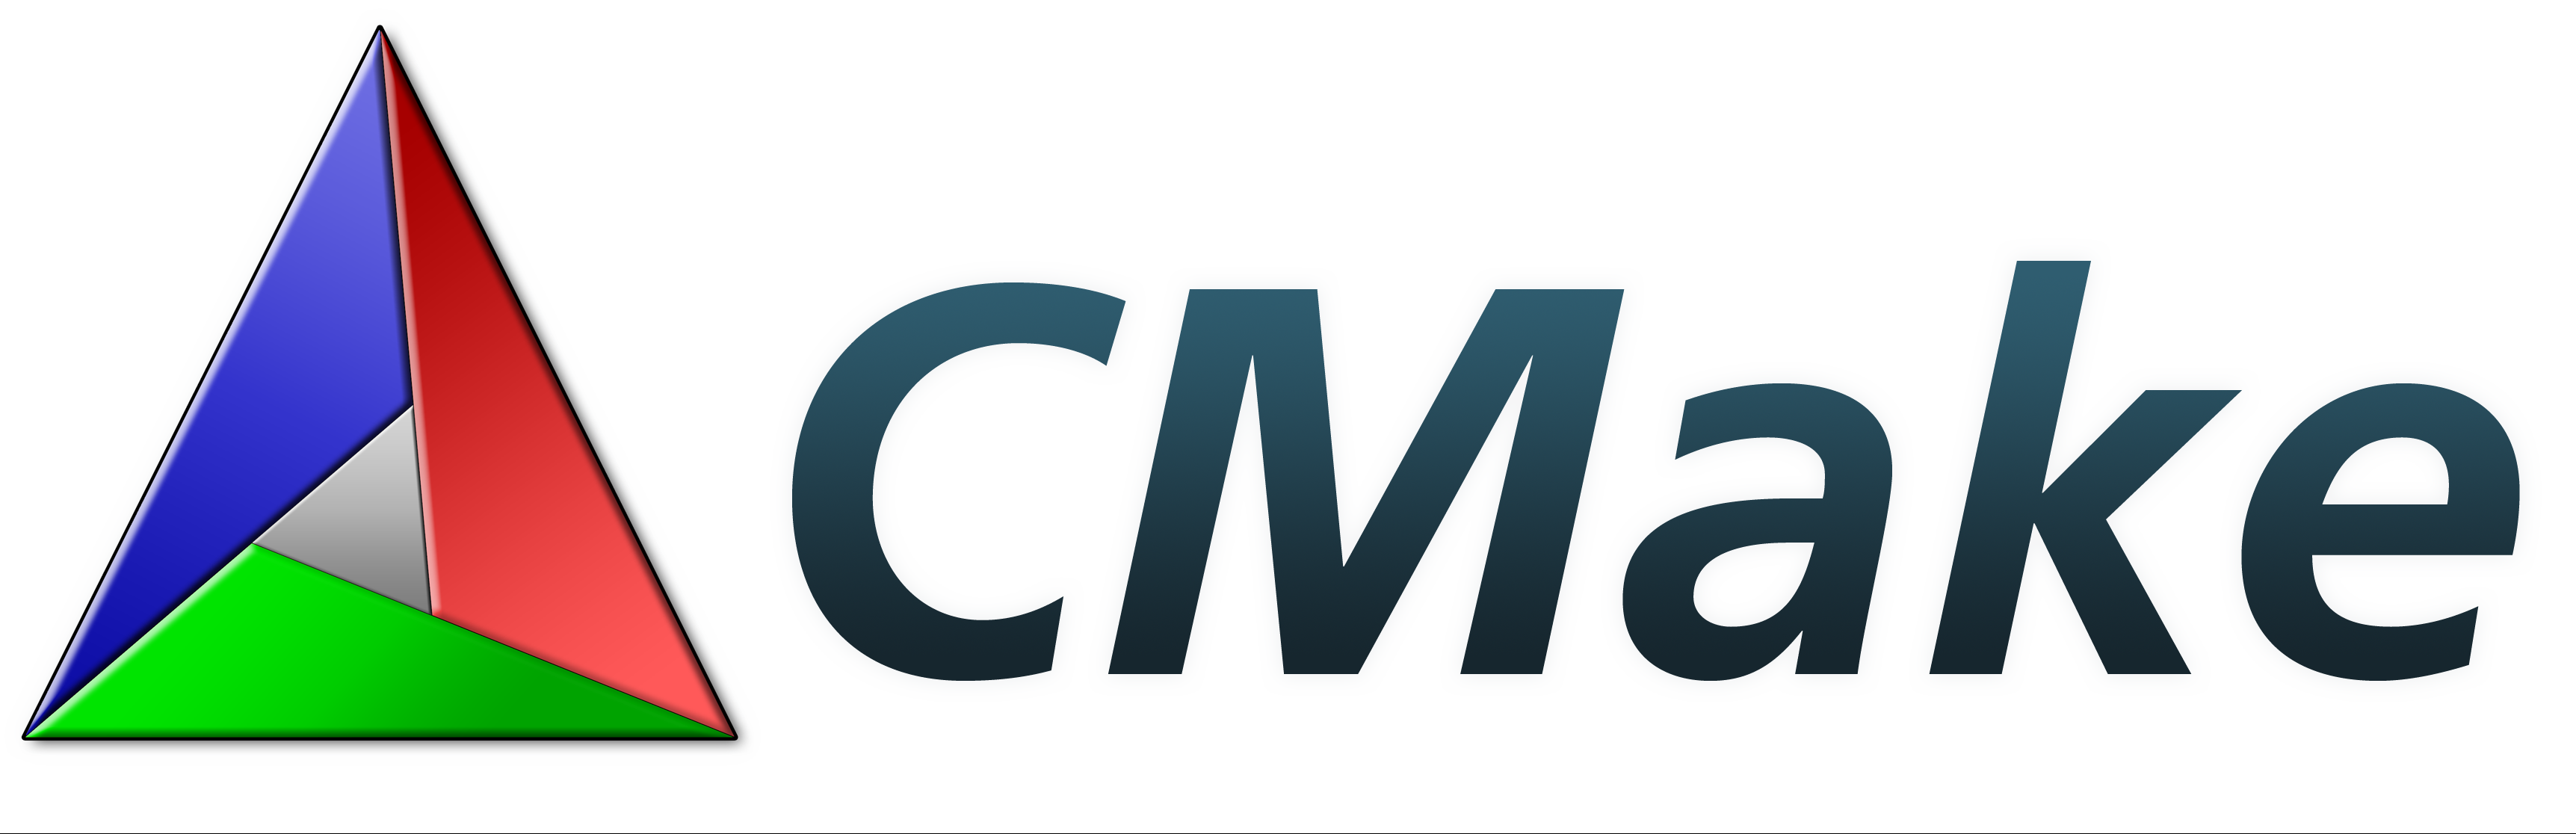 CMake-Logo-and-Text-e1540917038464.png